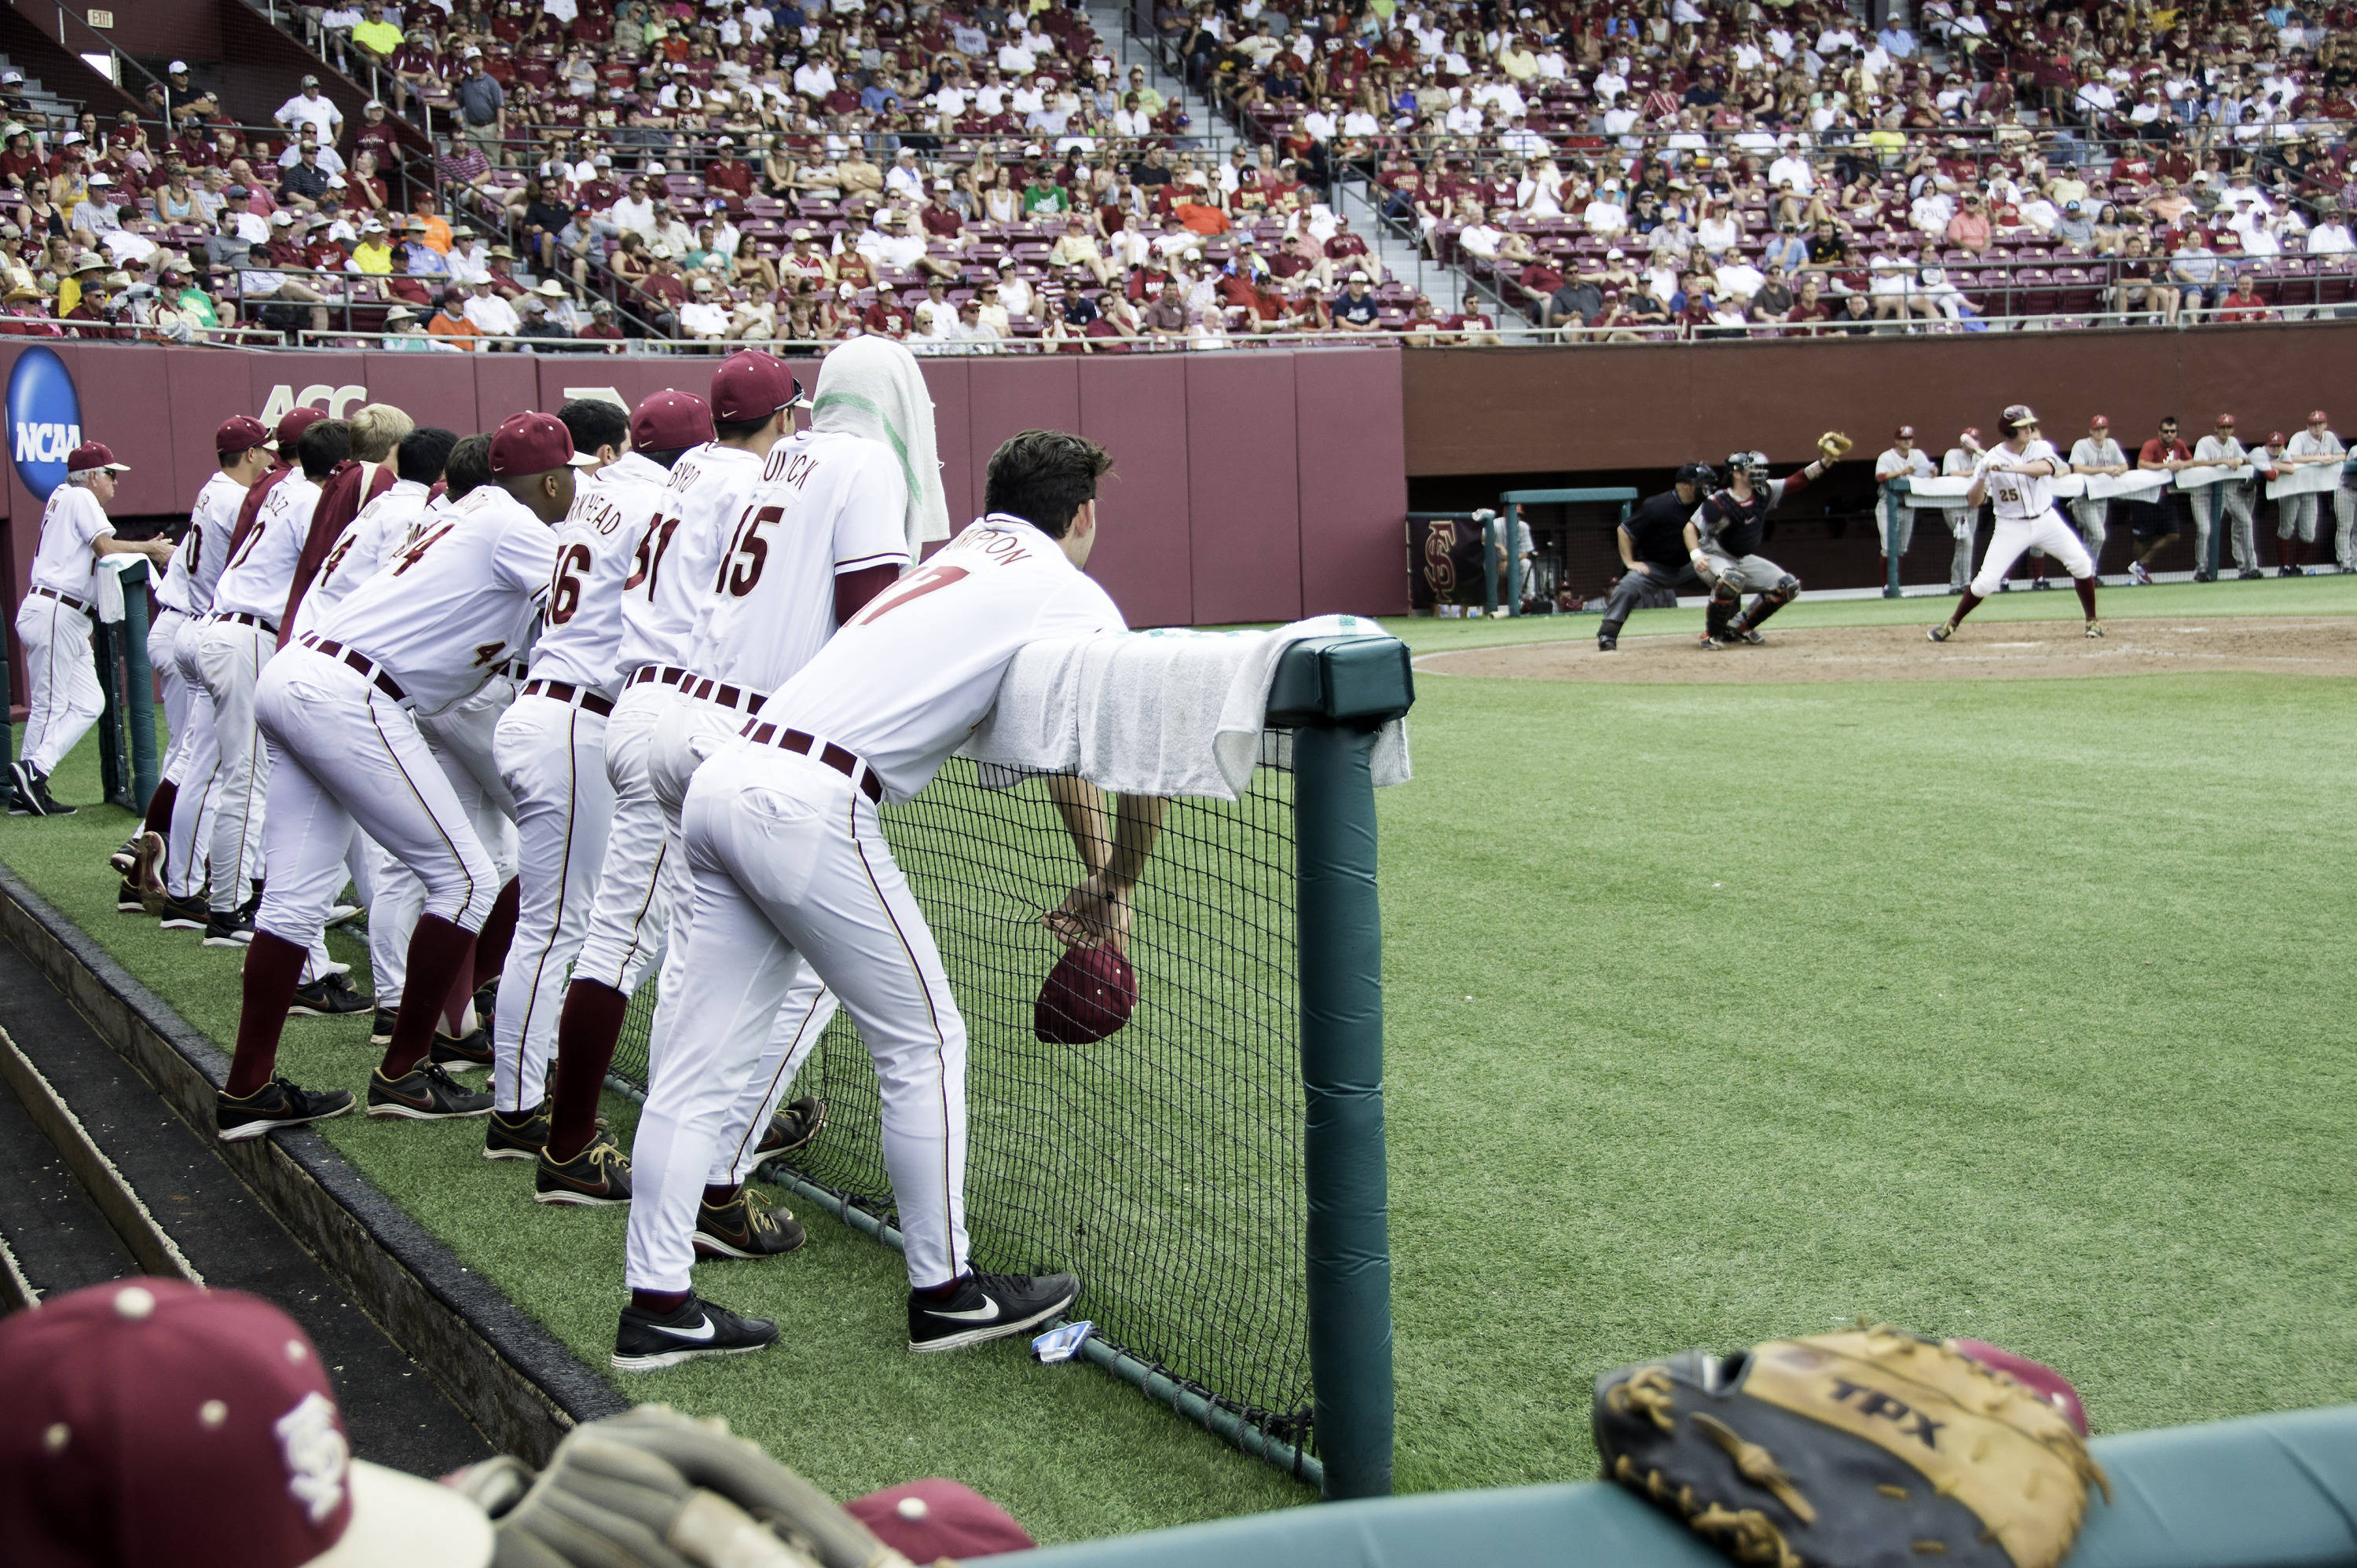 The Seminoles at the 2014 Tallahassee Regional